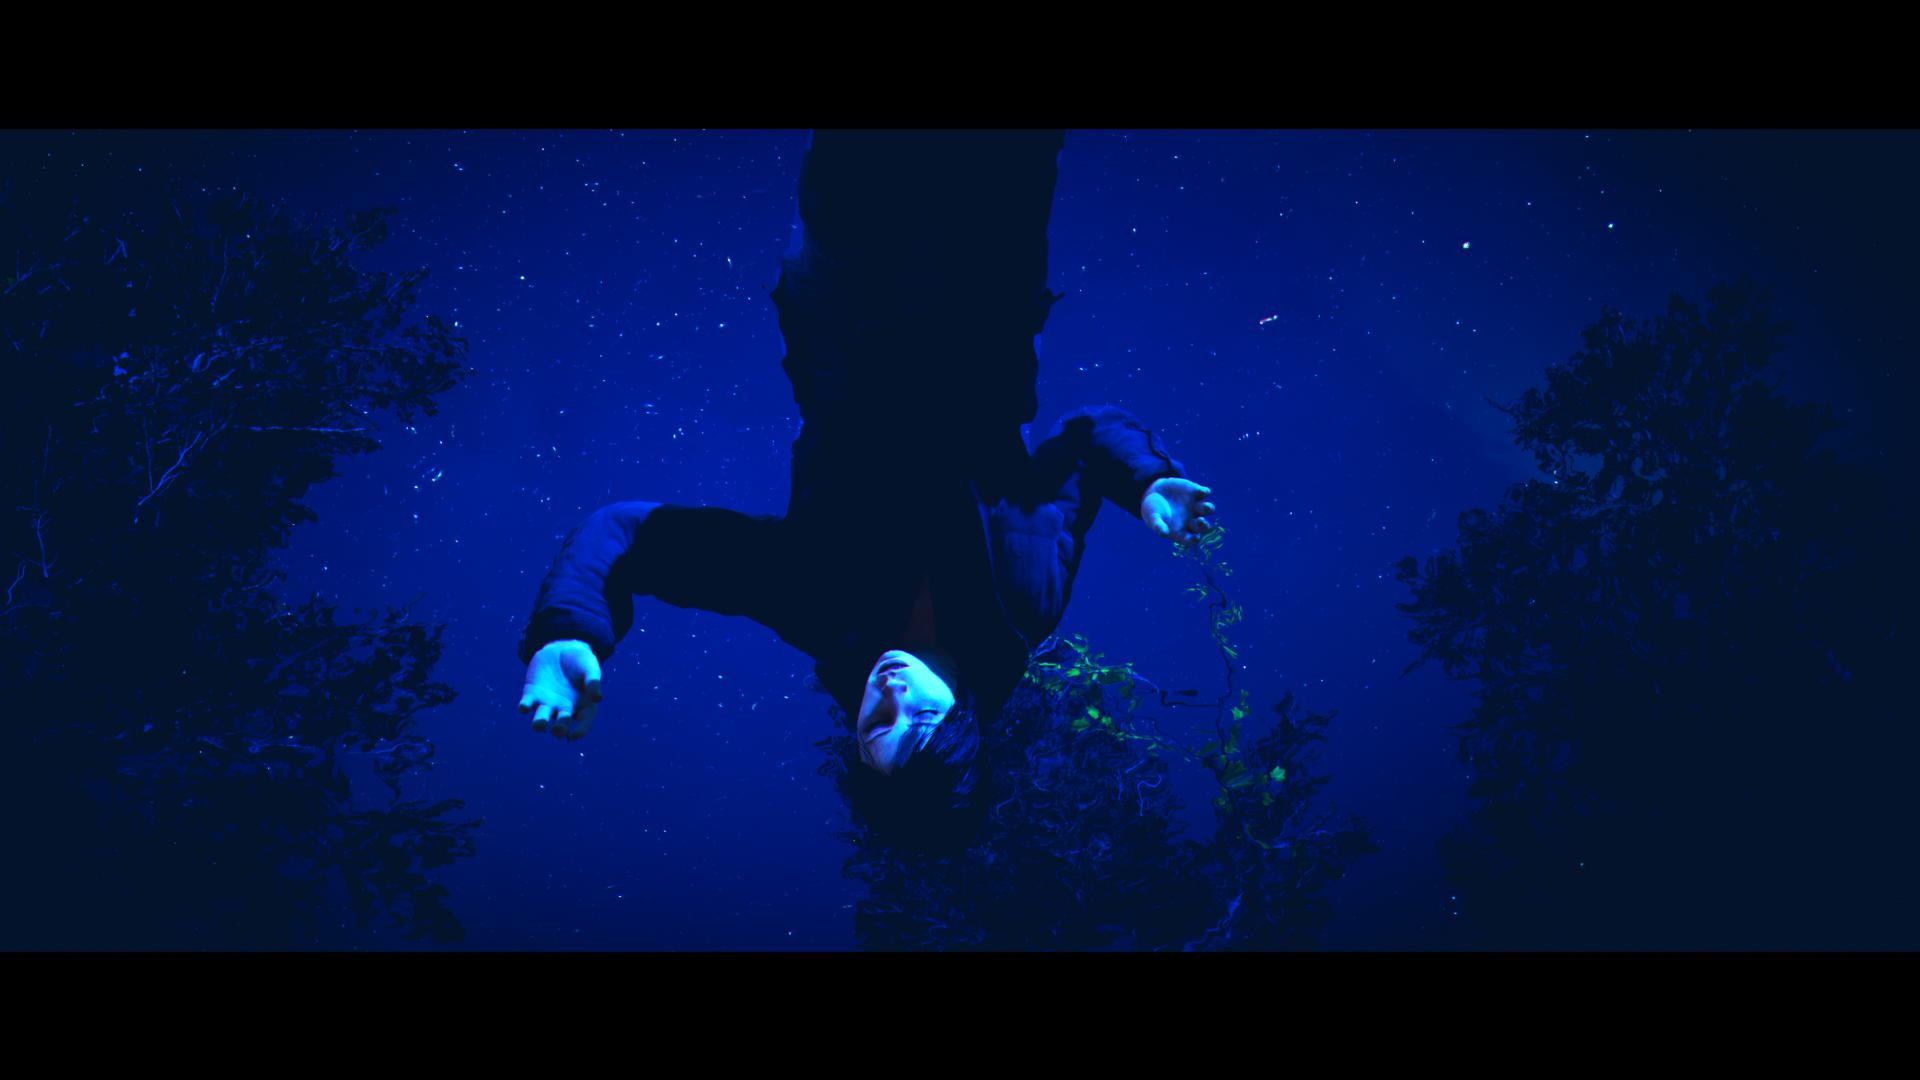 It's a videogame screenshot of a body floating in a lake, taken from underneath the water, at night.